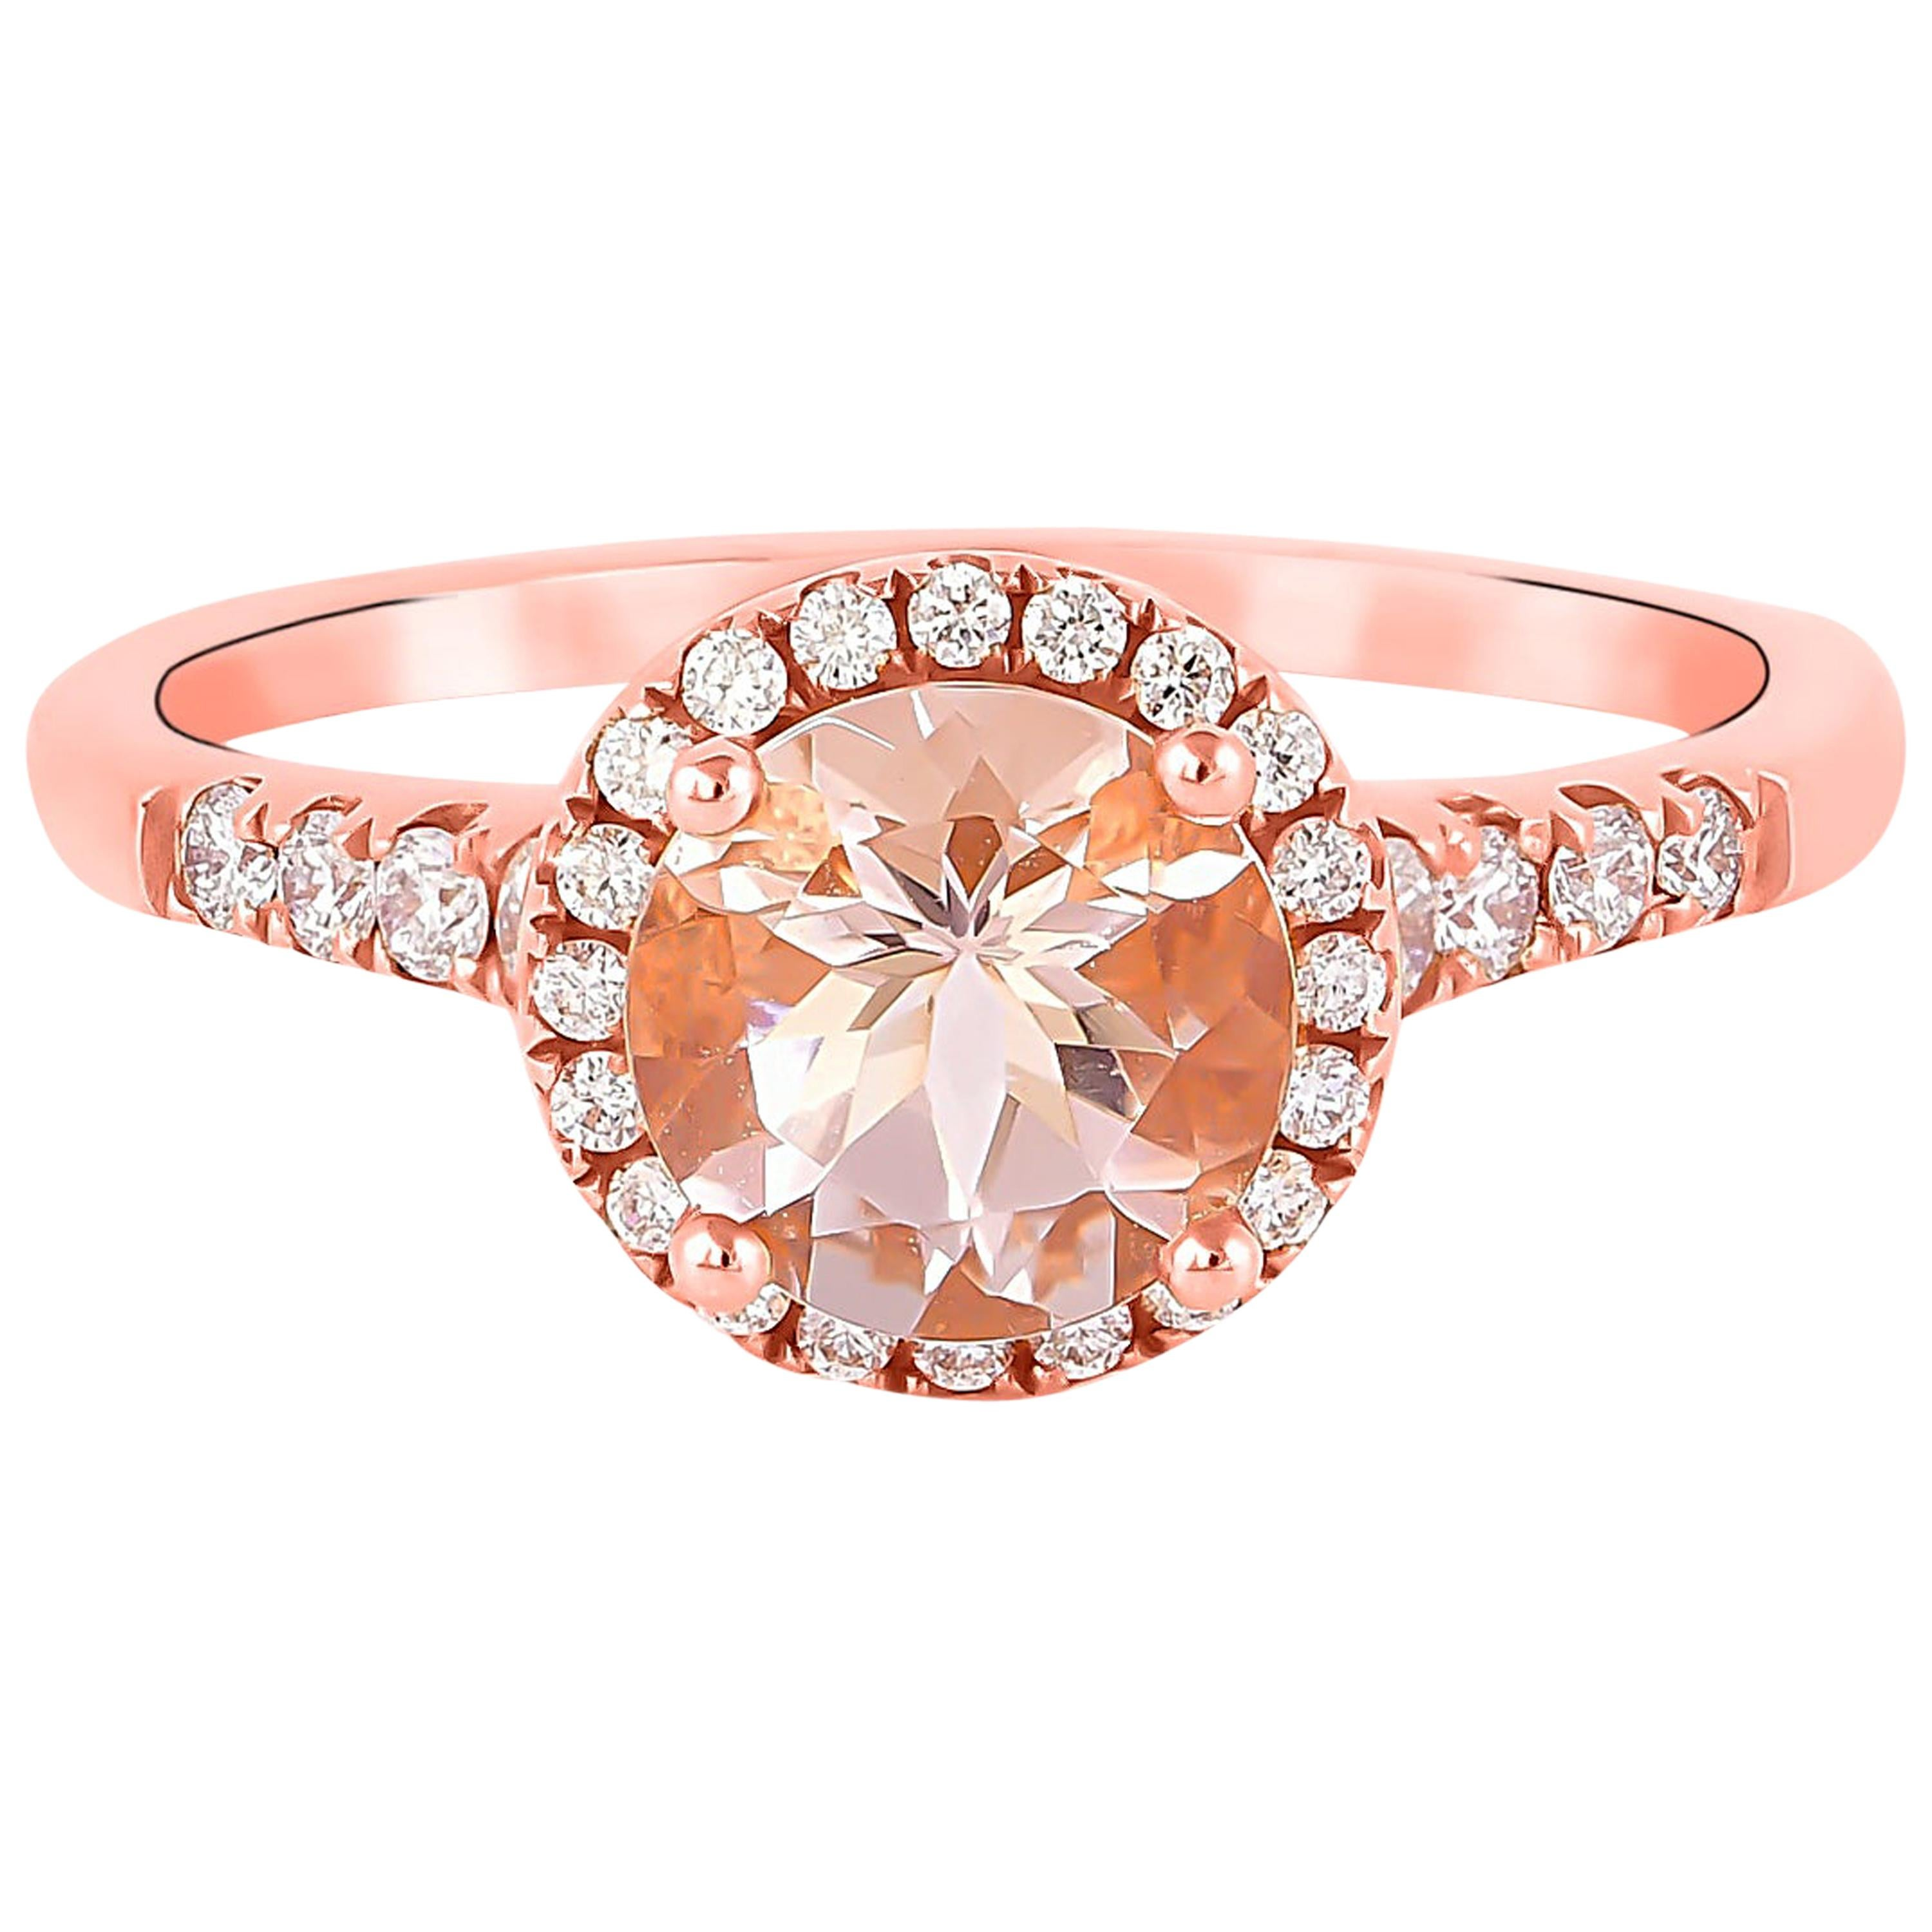 1.1 Carat Morganite and Diamond Ring in 18 Karat Rose Gold